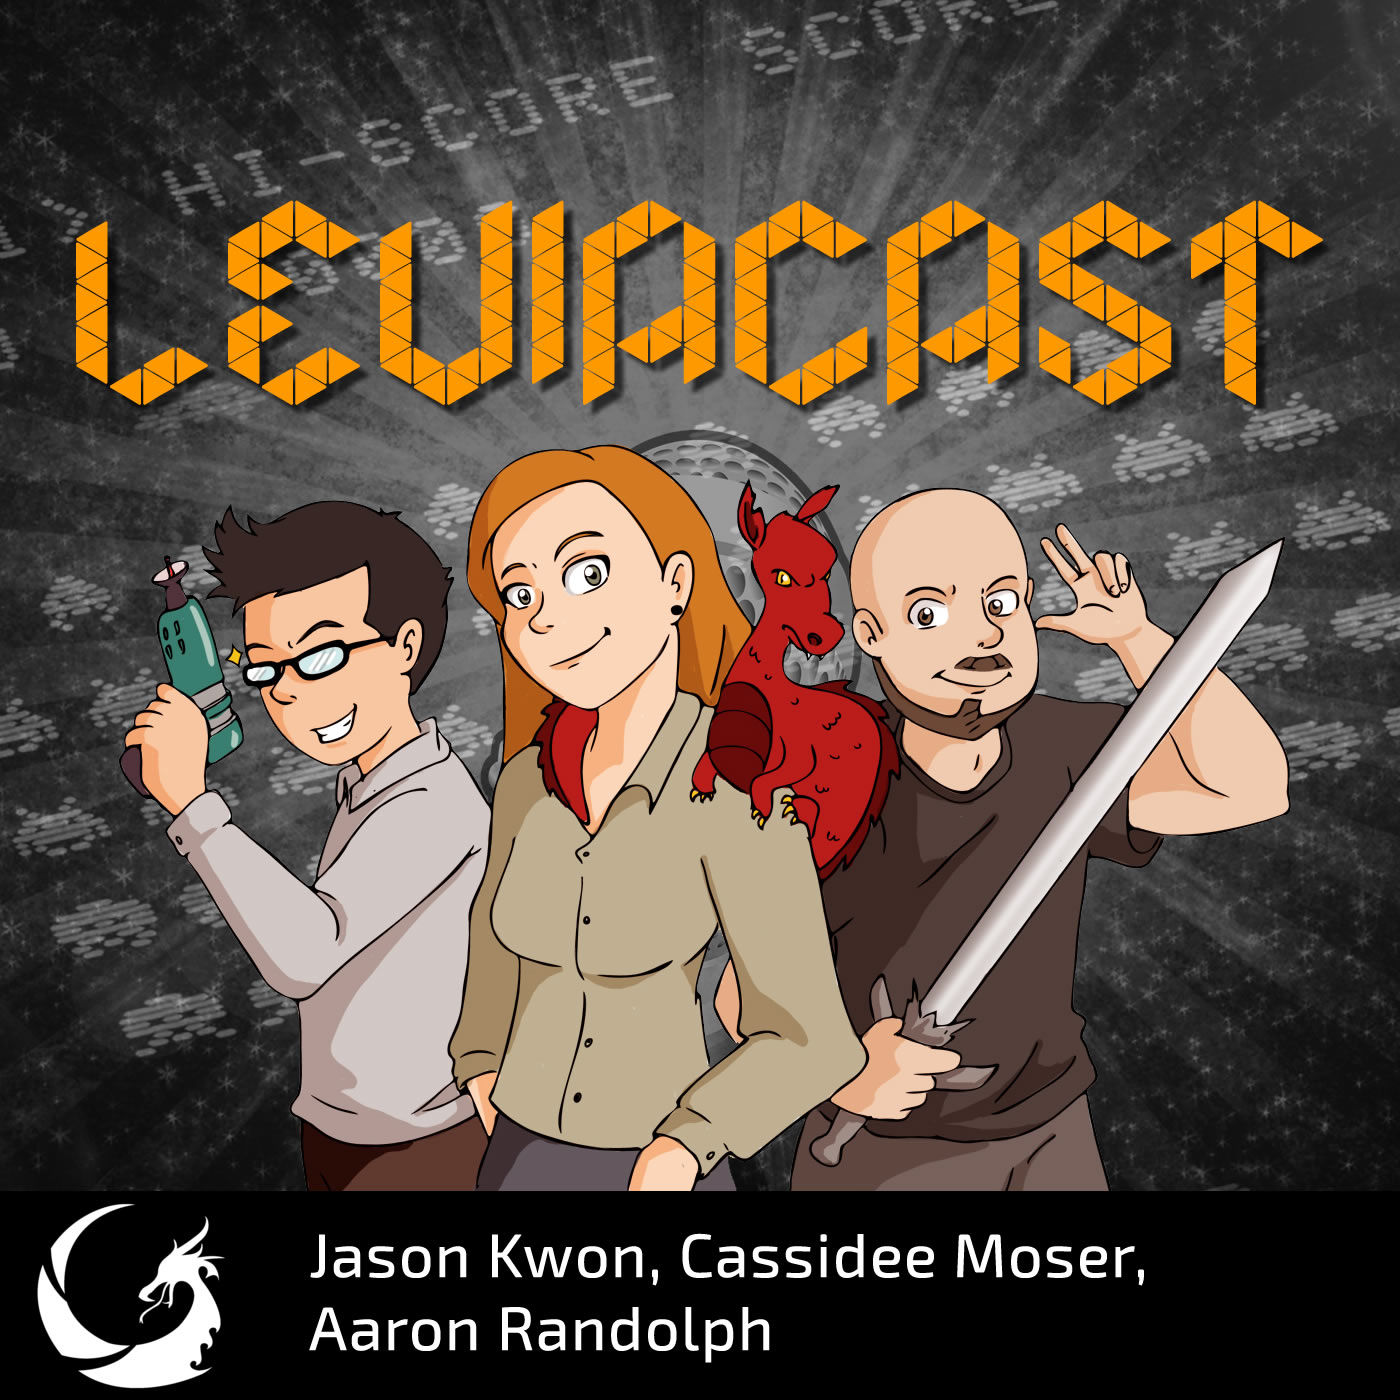 Leviacast Ep. 69 (1/2): Shovel Knight, Jazzpunk, and More!